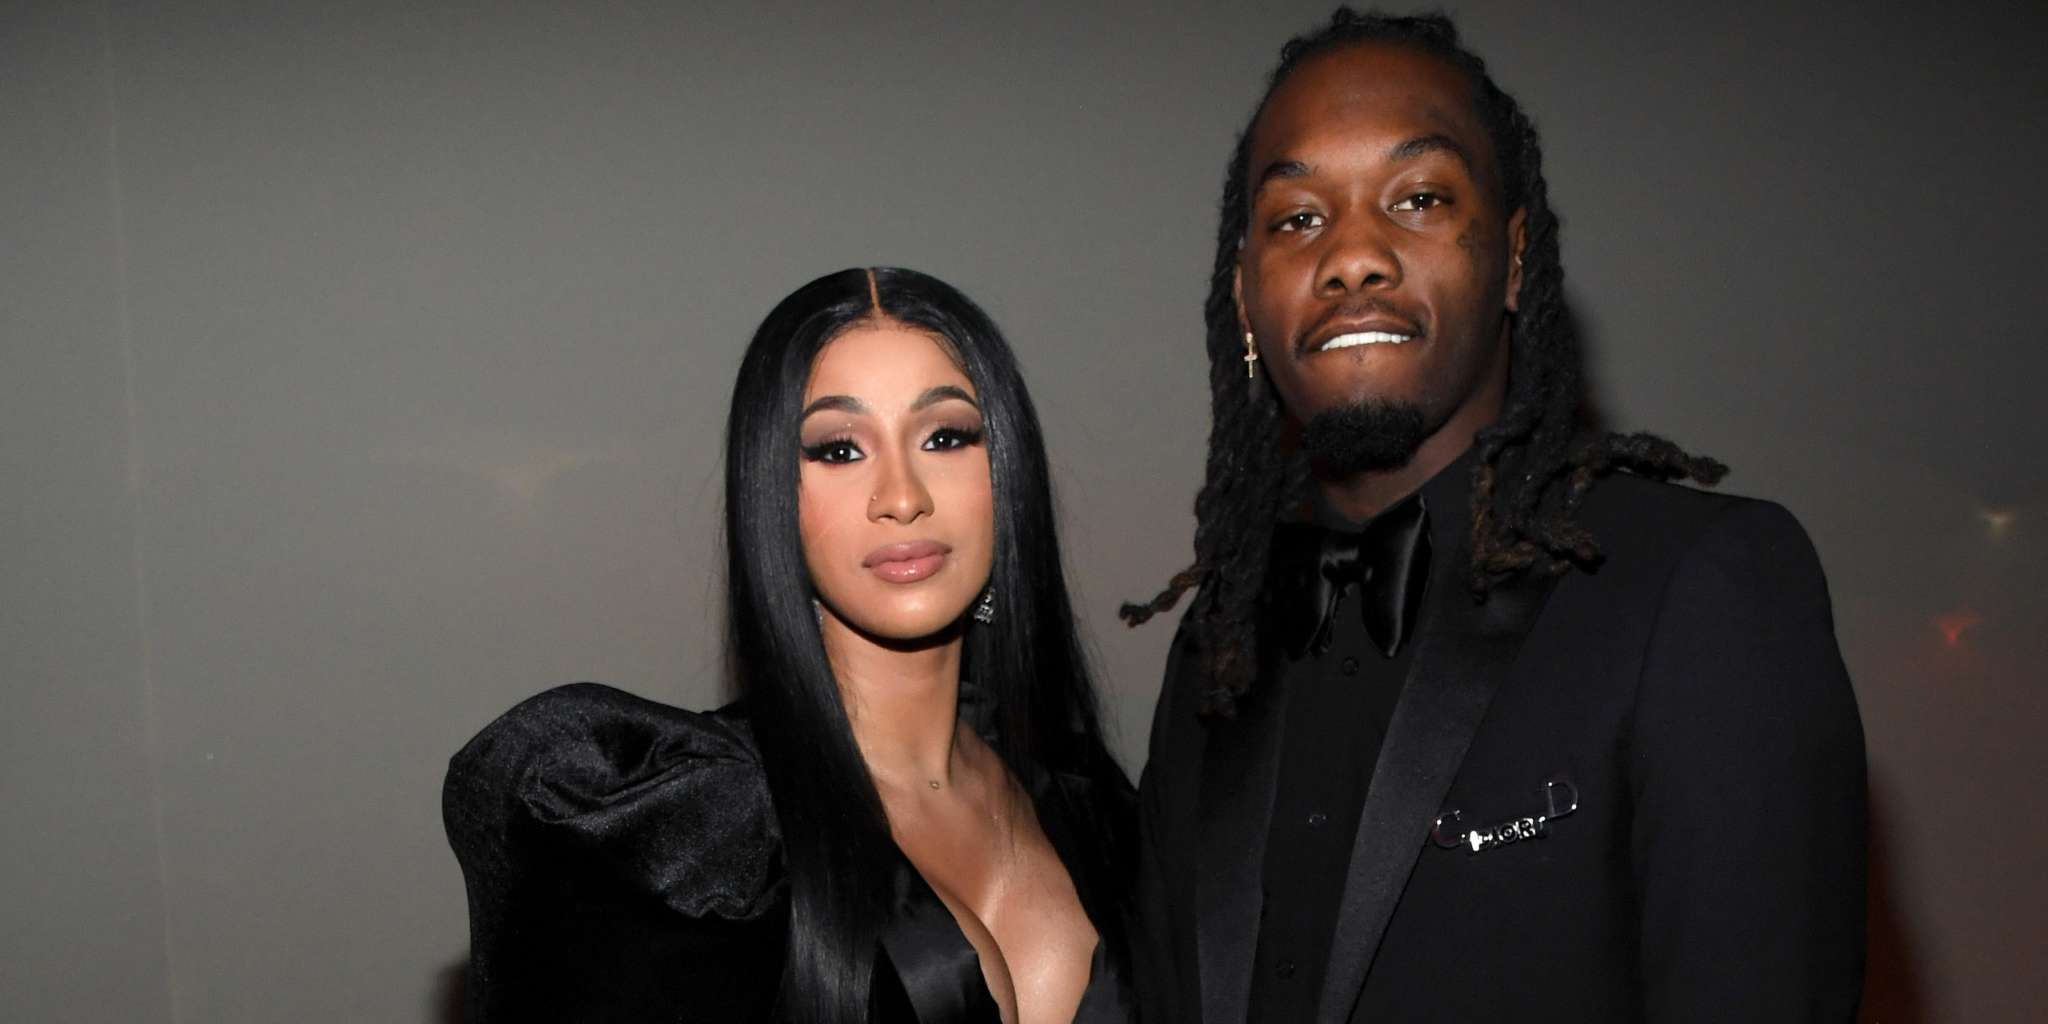 offset-flirts-with-scrumptious-cardi-b-after-night-together-at-a-strip-club-are-they-back-together